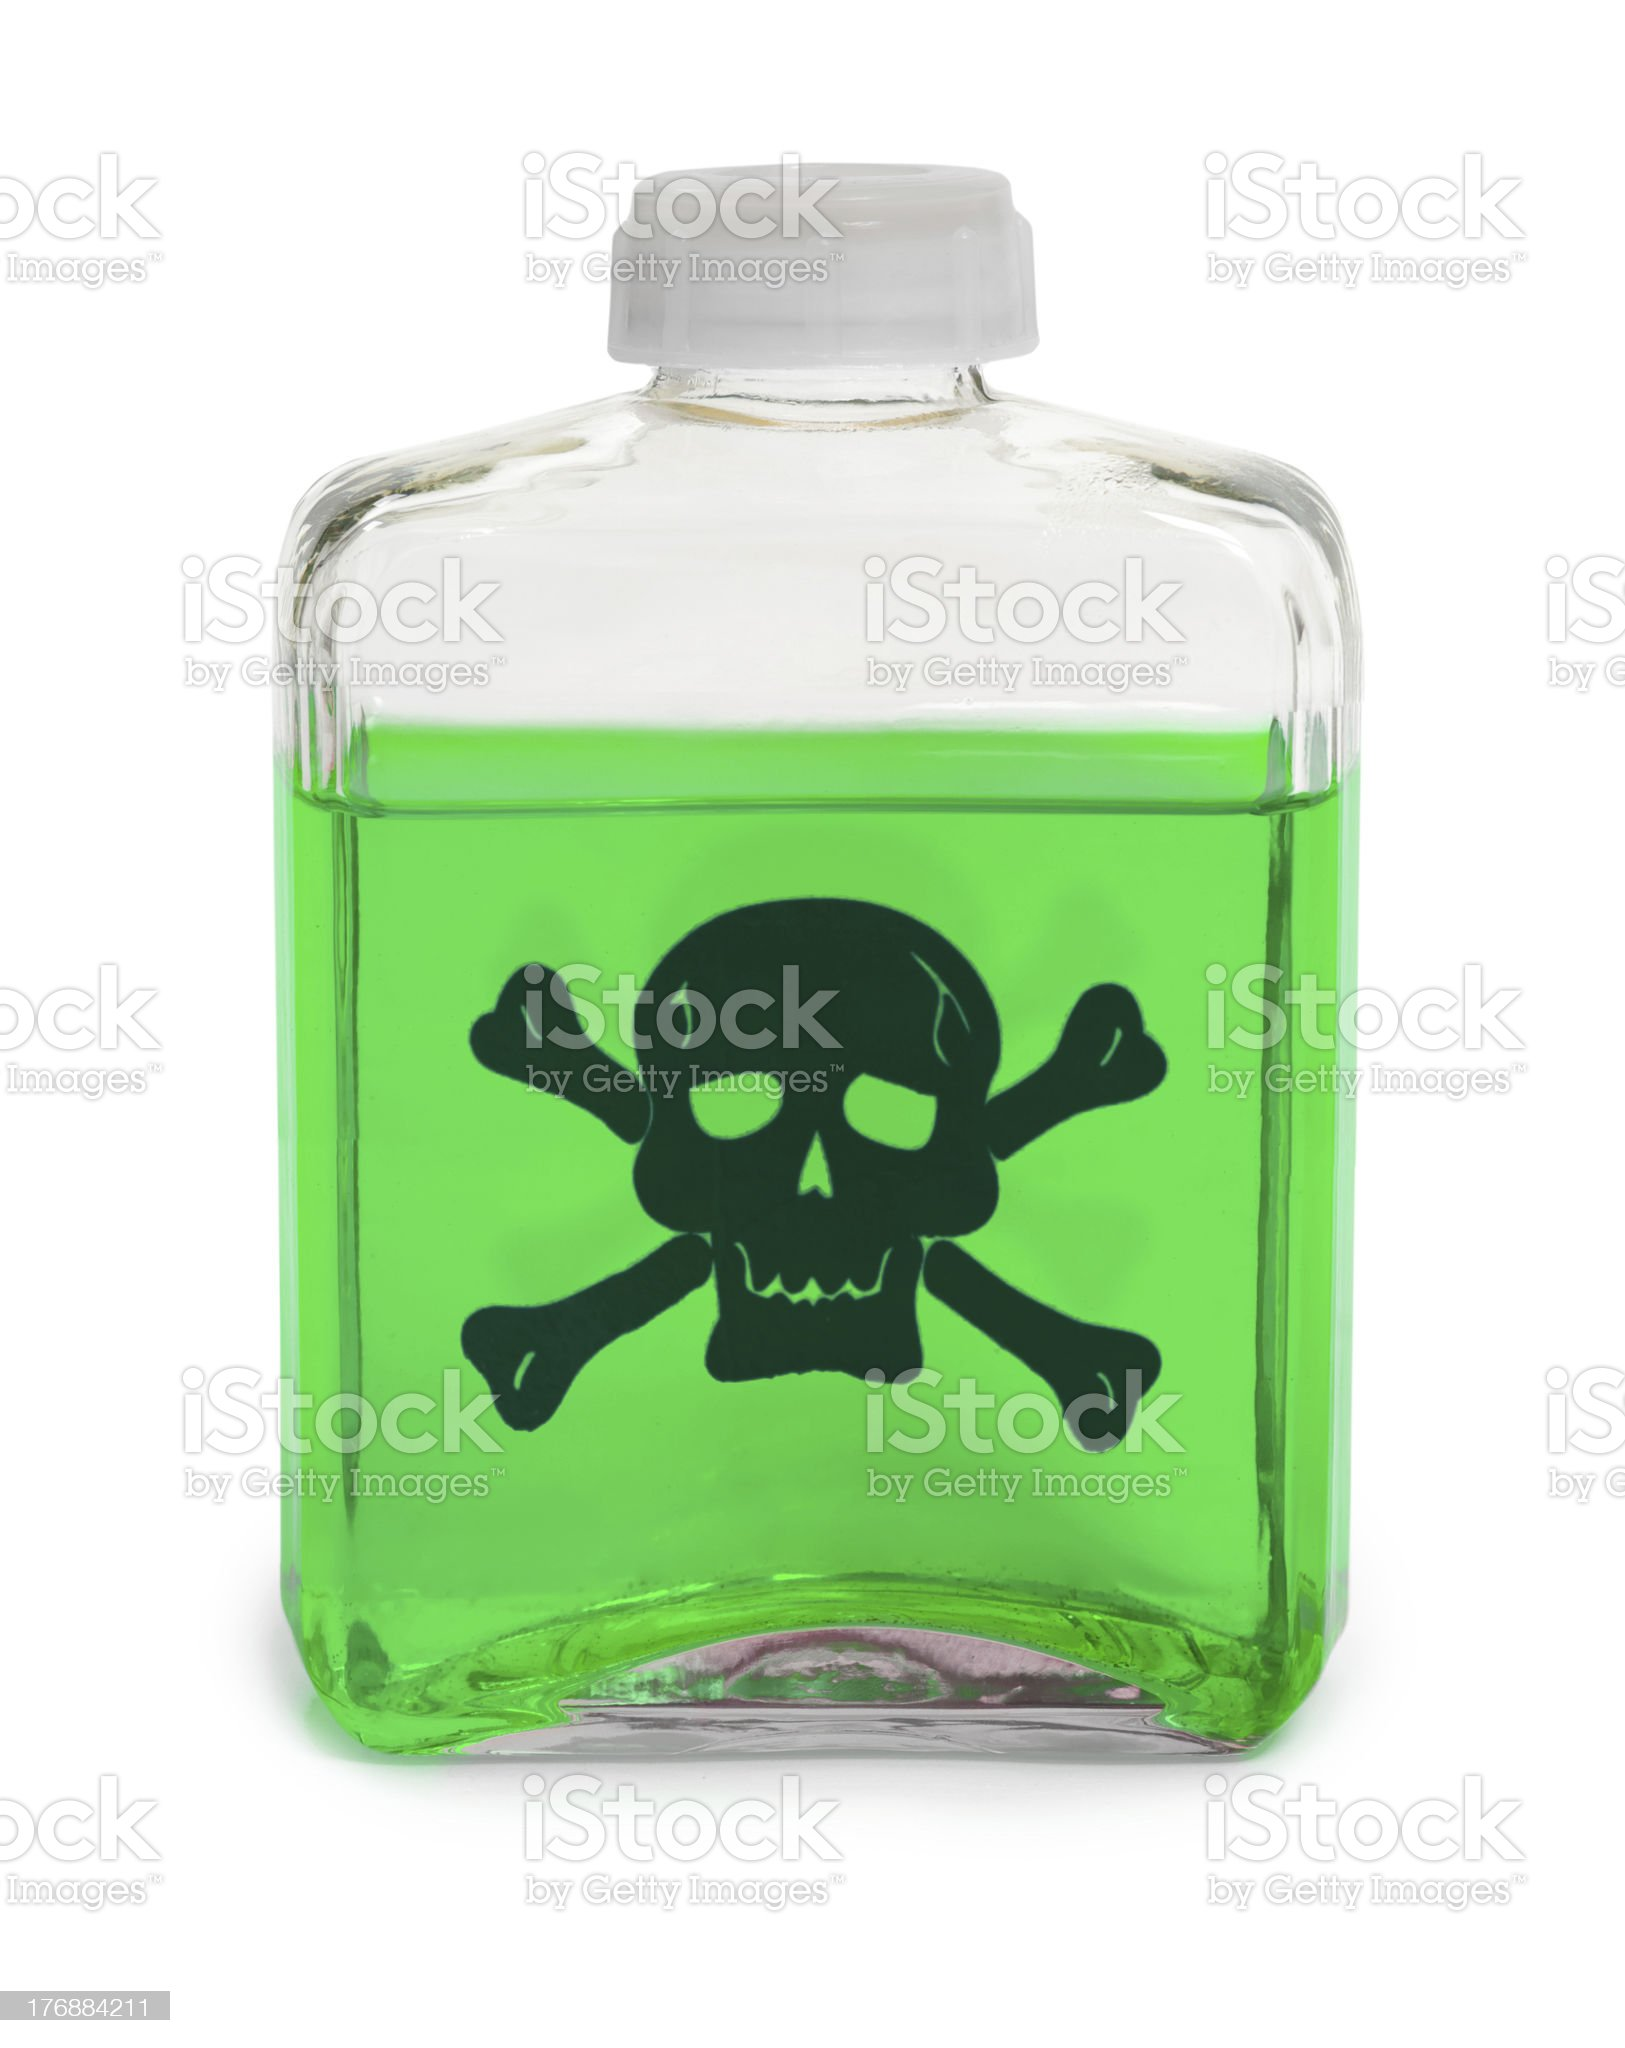 Bottle with green toxic chemical solution royalty-free stock photo